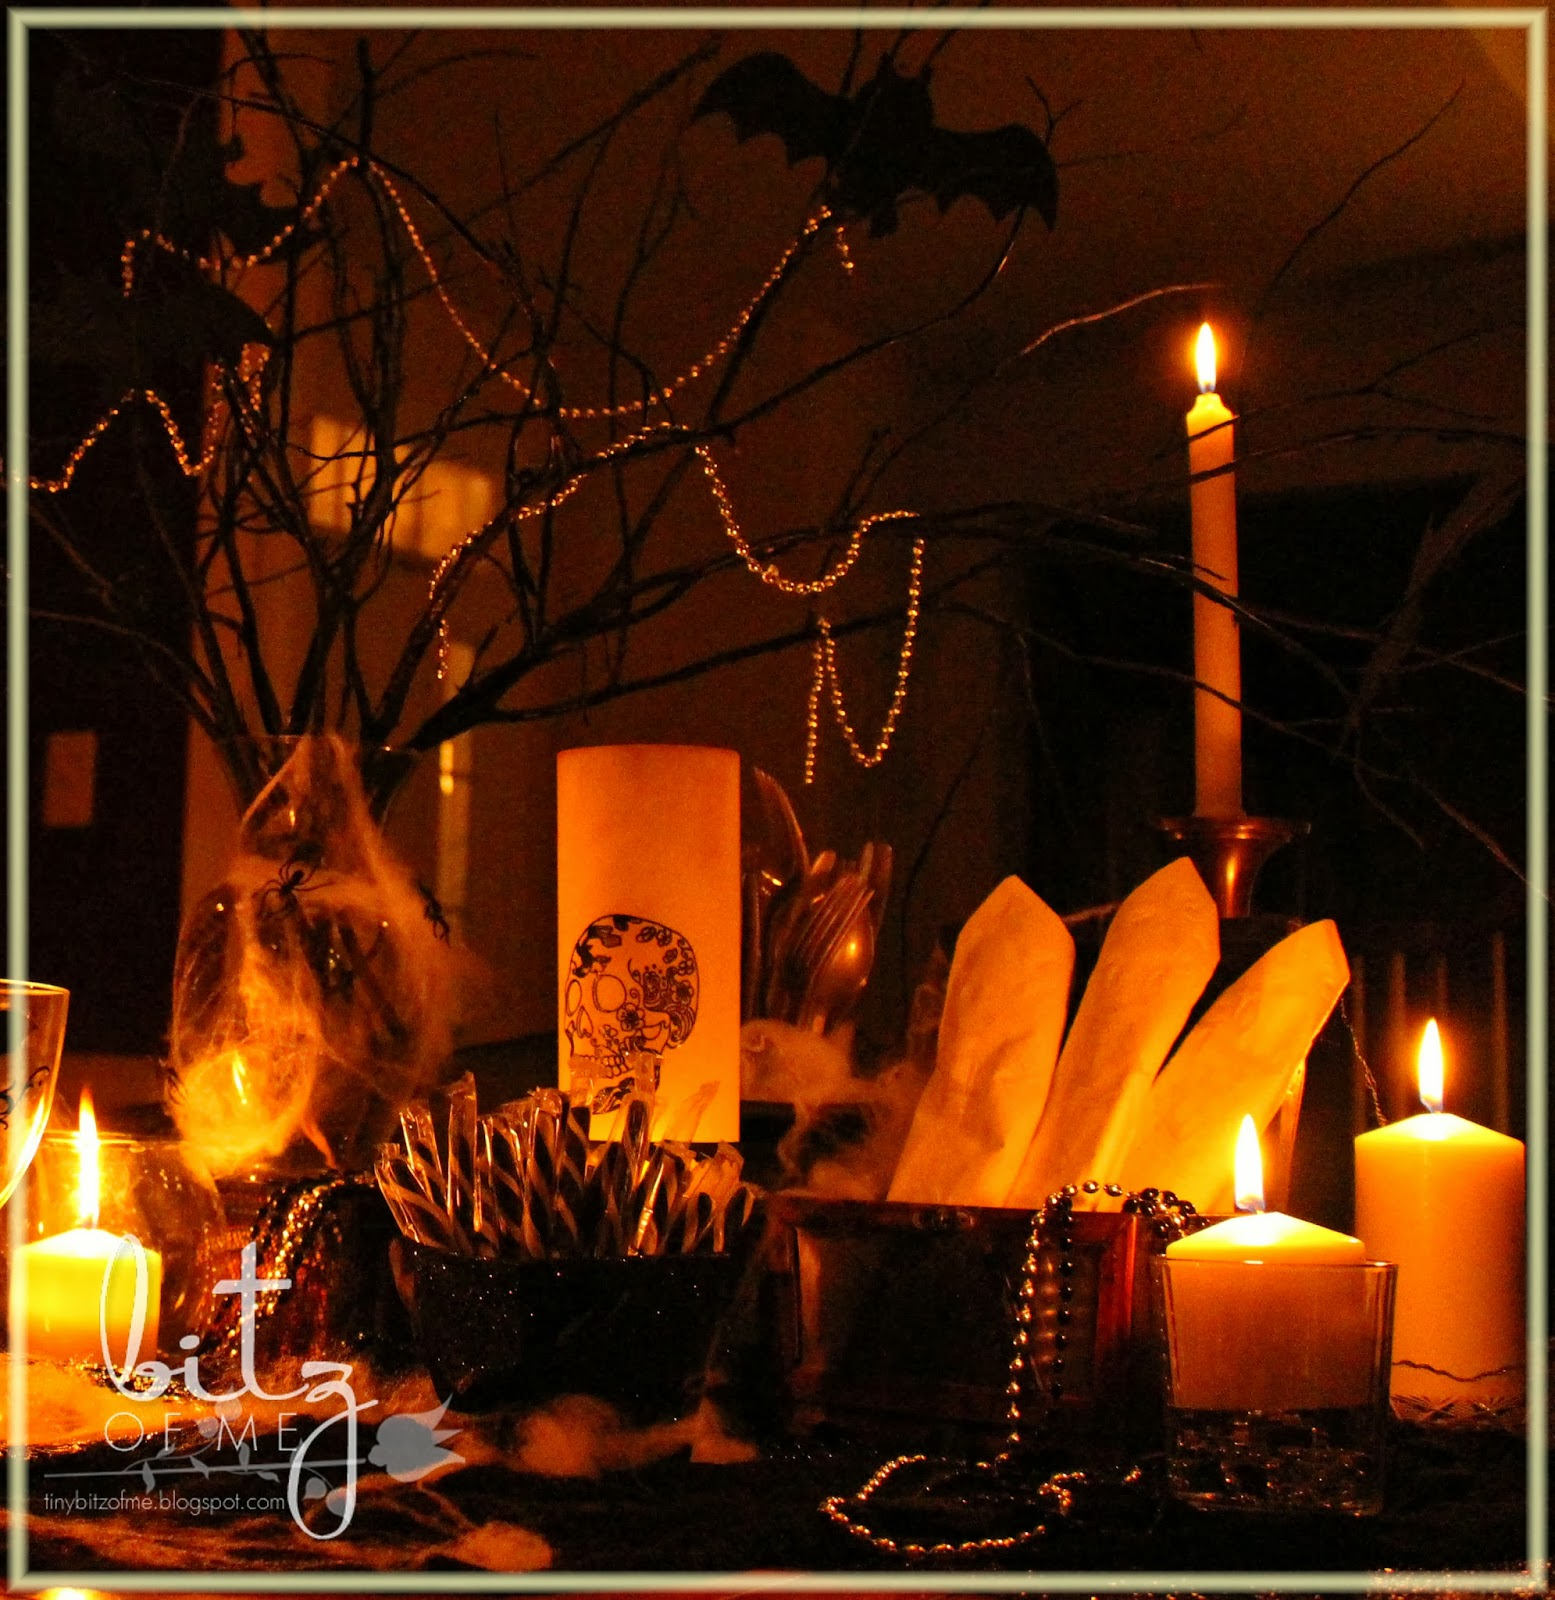 Halloween Event Ideas For Adults: Ghoulish Delight!